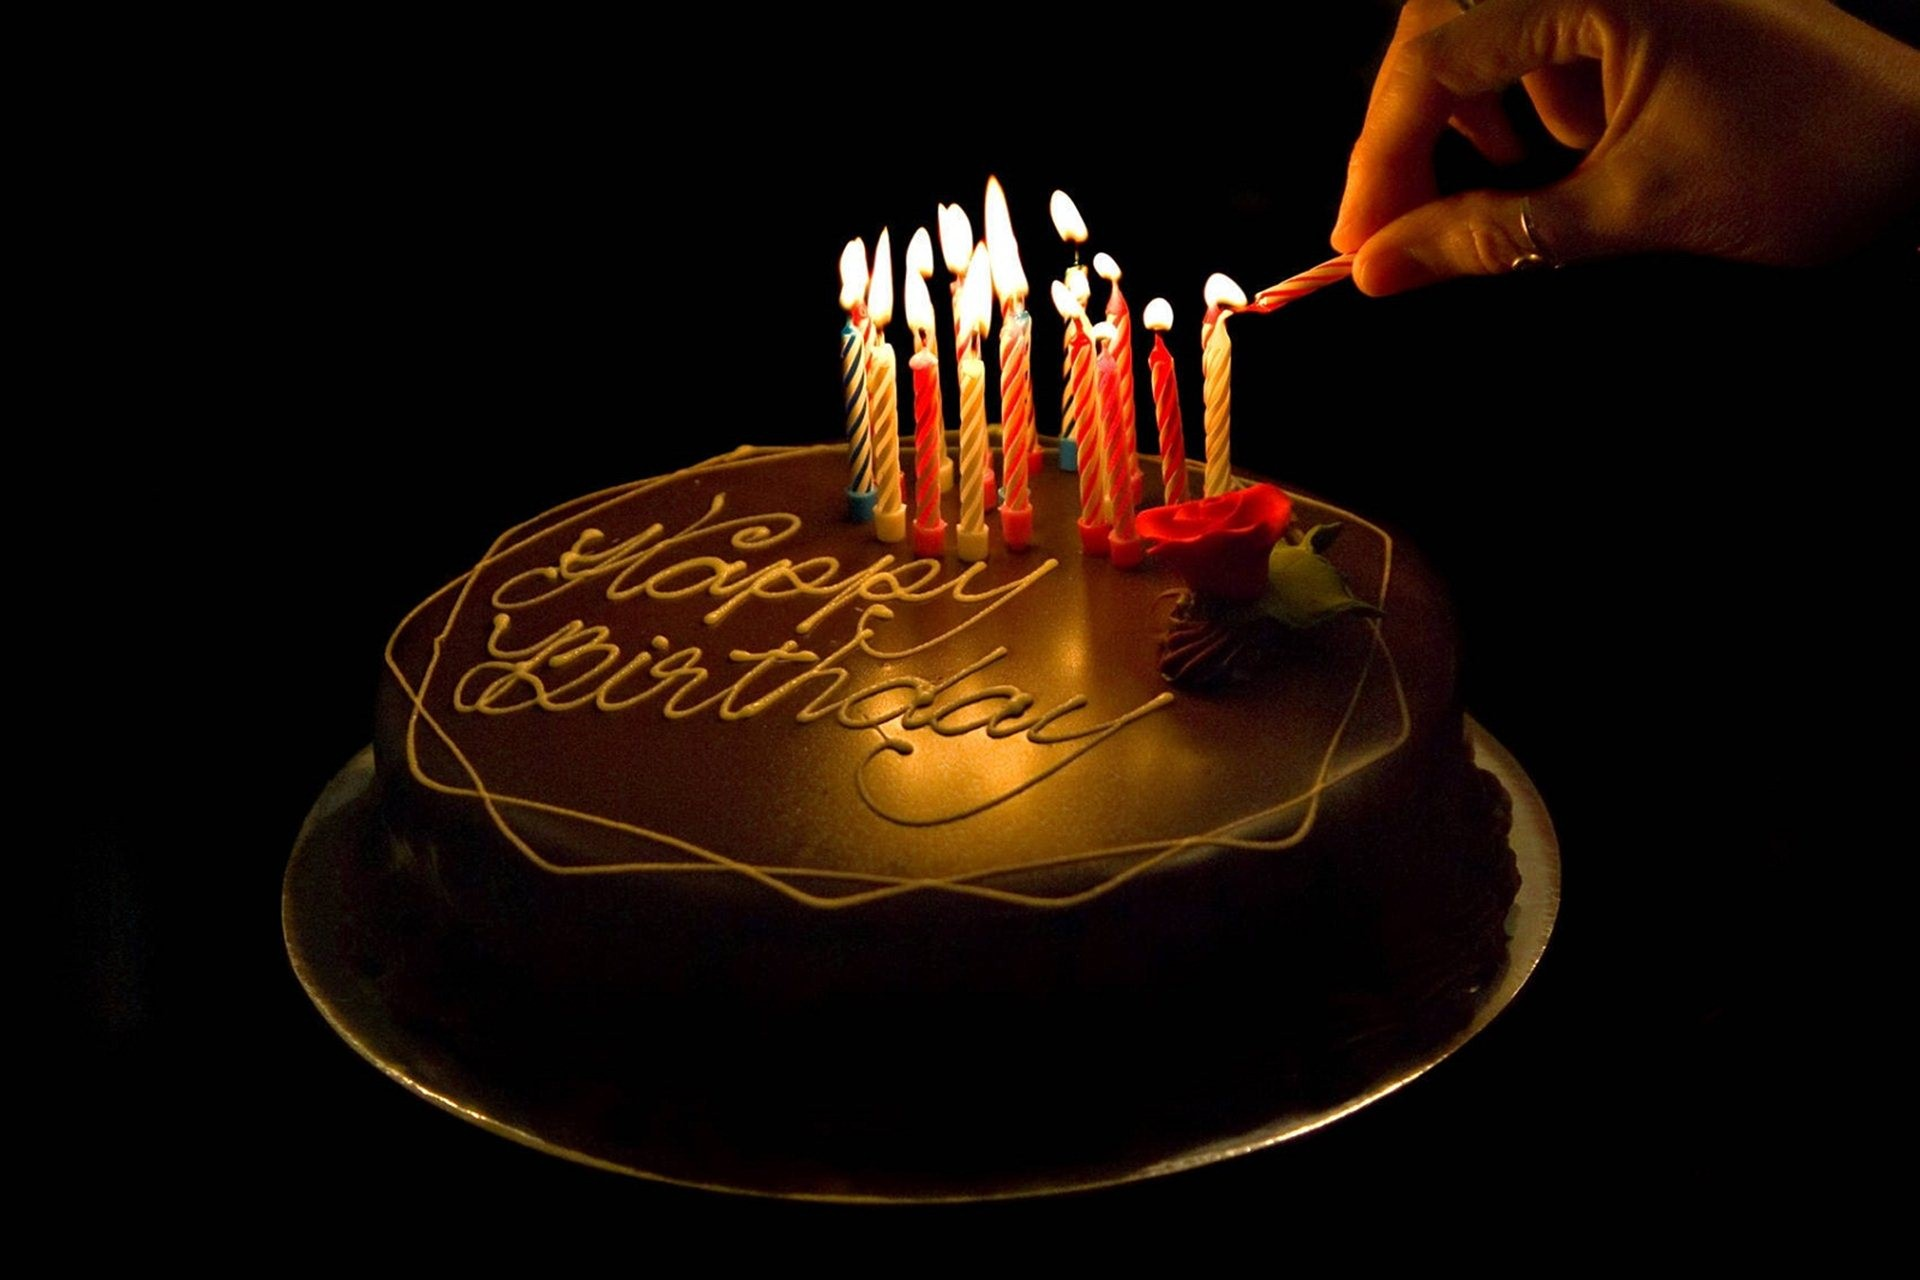 birthday cake wallpaper ; Happy_Birthday_Cake_Wallpaper